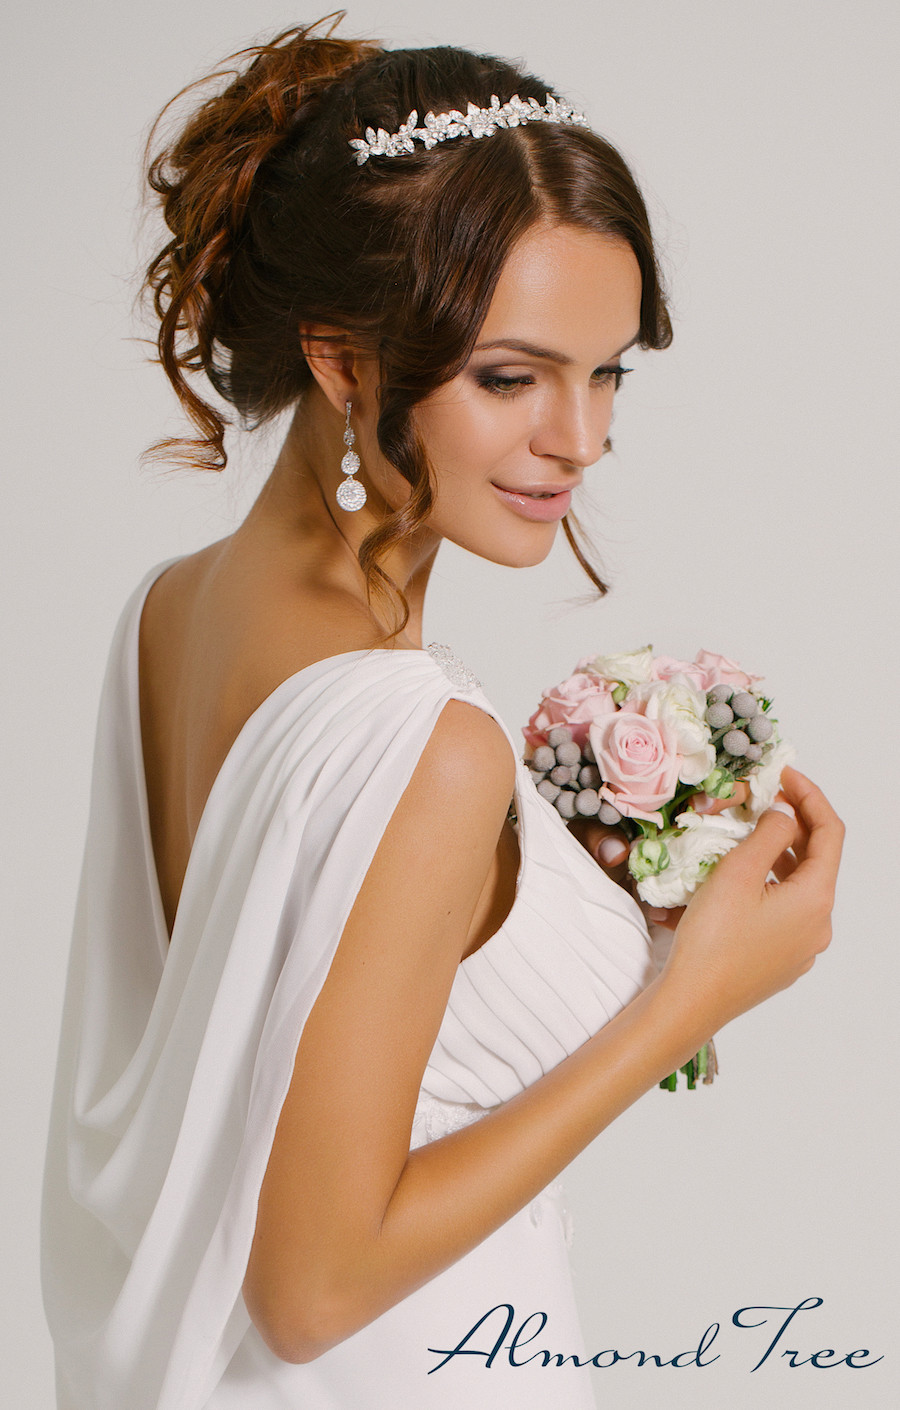 Beautiful Happy Bride in White Bridal Wedding Dress from Almond Tree Wedding Boutique